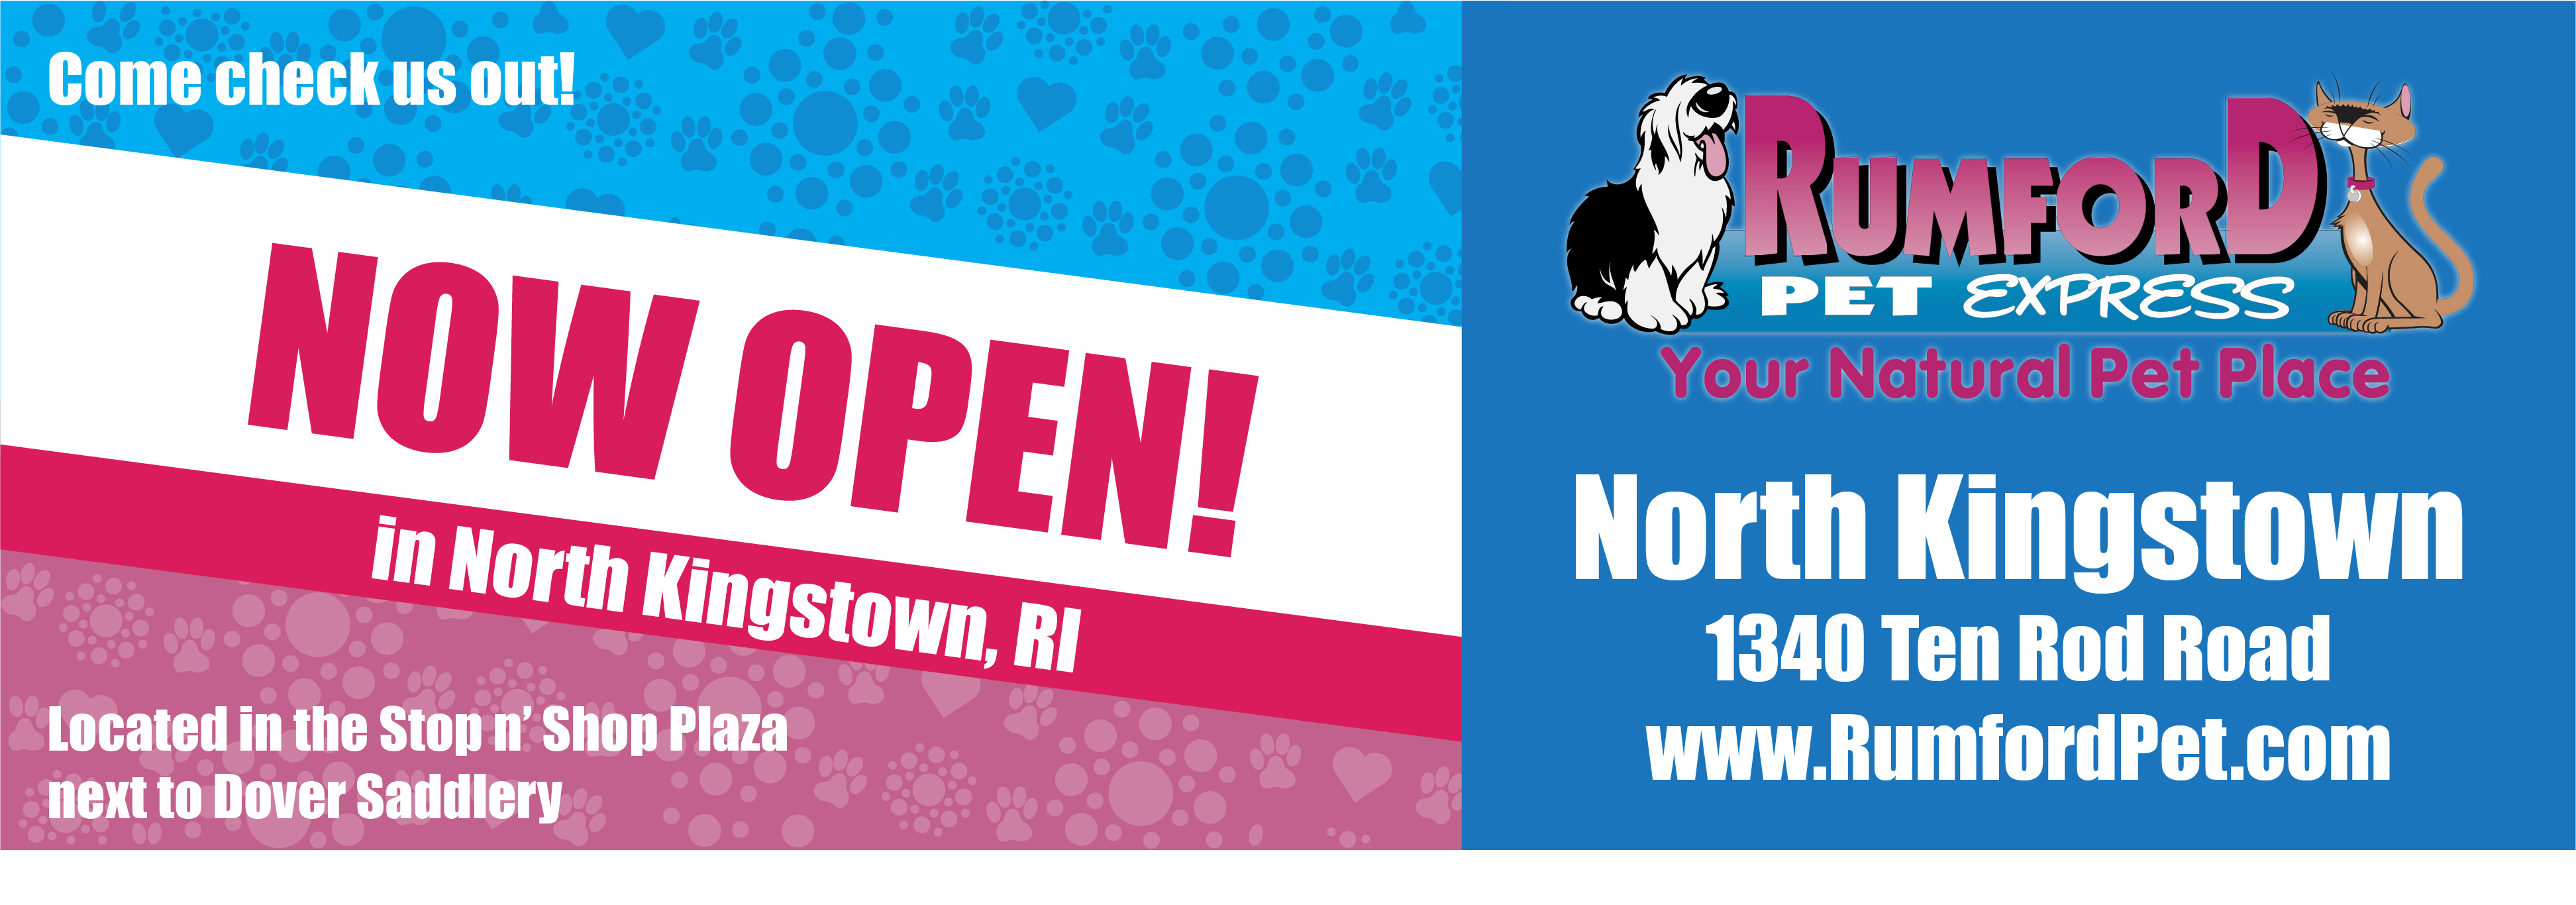 Now Open in North Kingstown